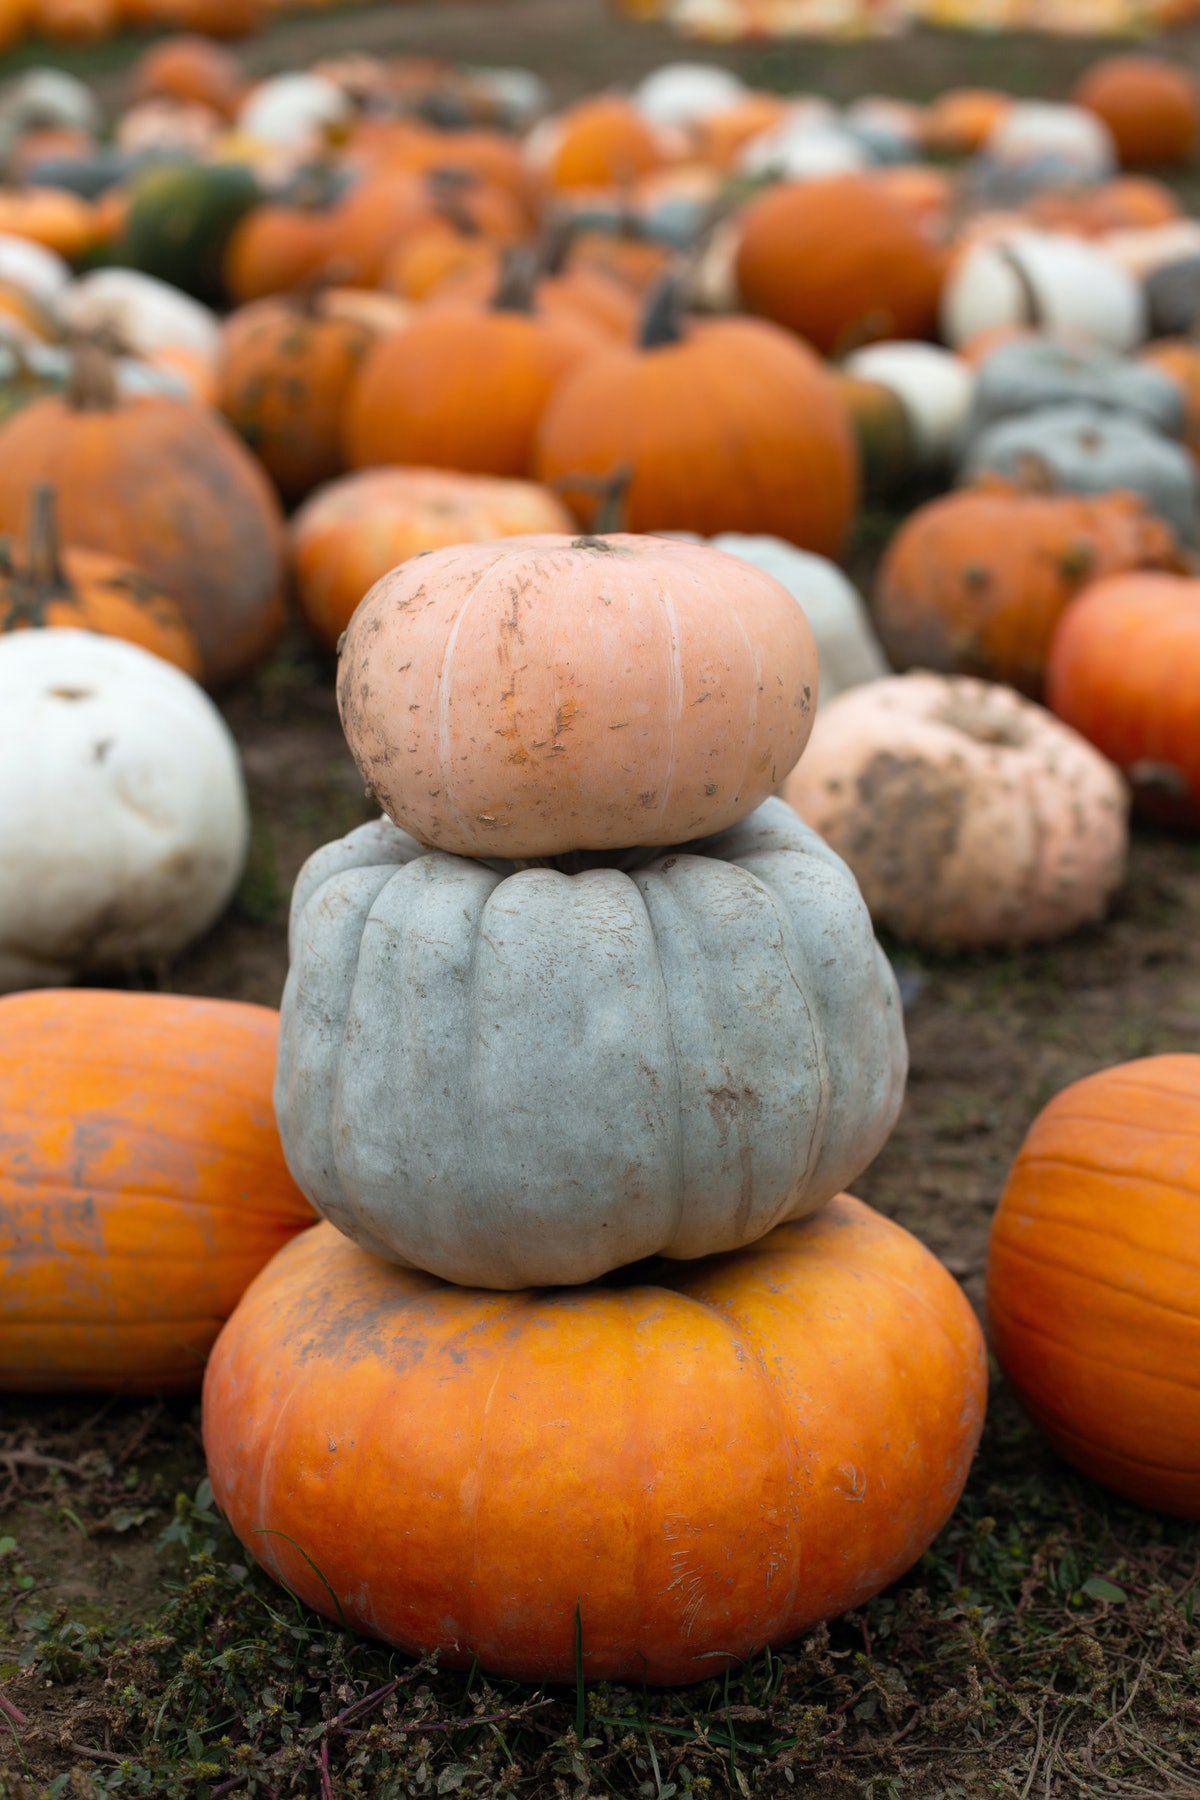 A pumpkin patch. Eating seasonal foods is a historic tradition.